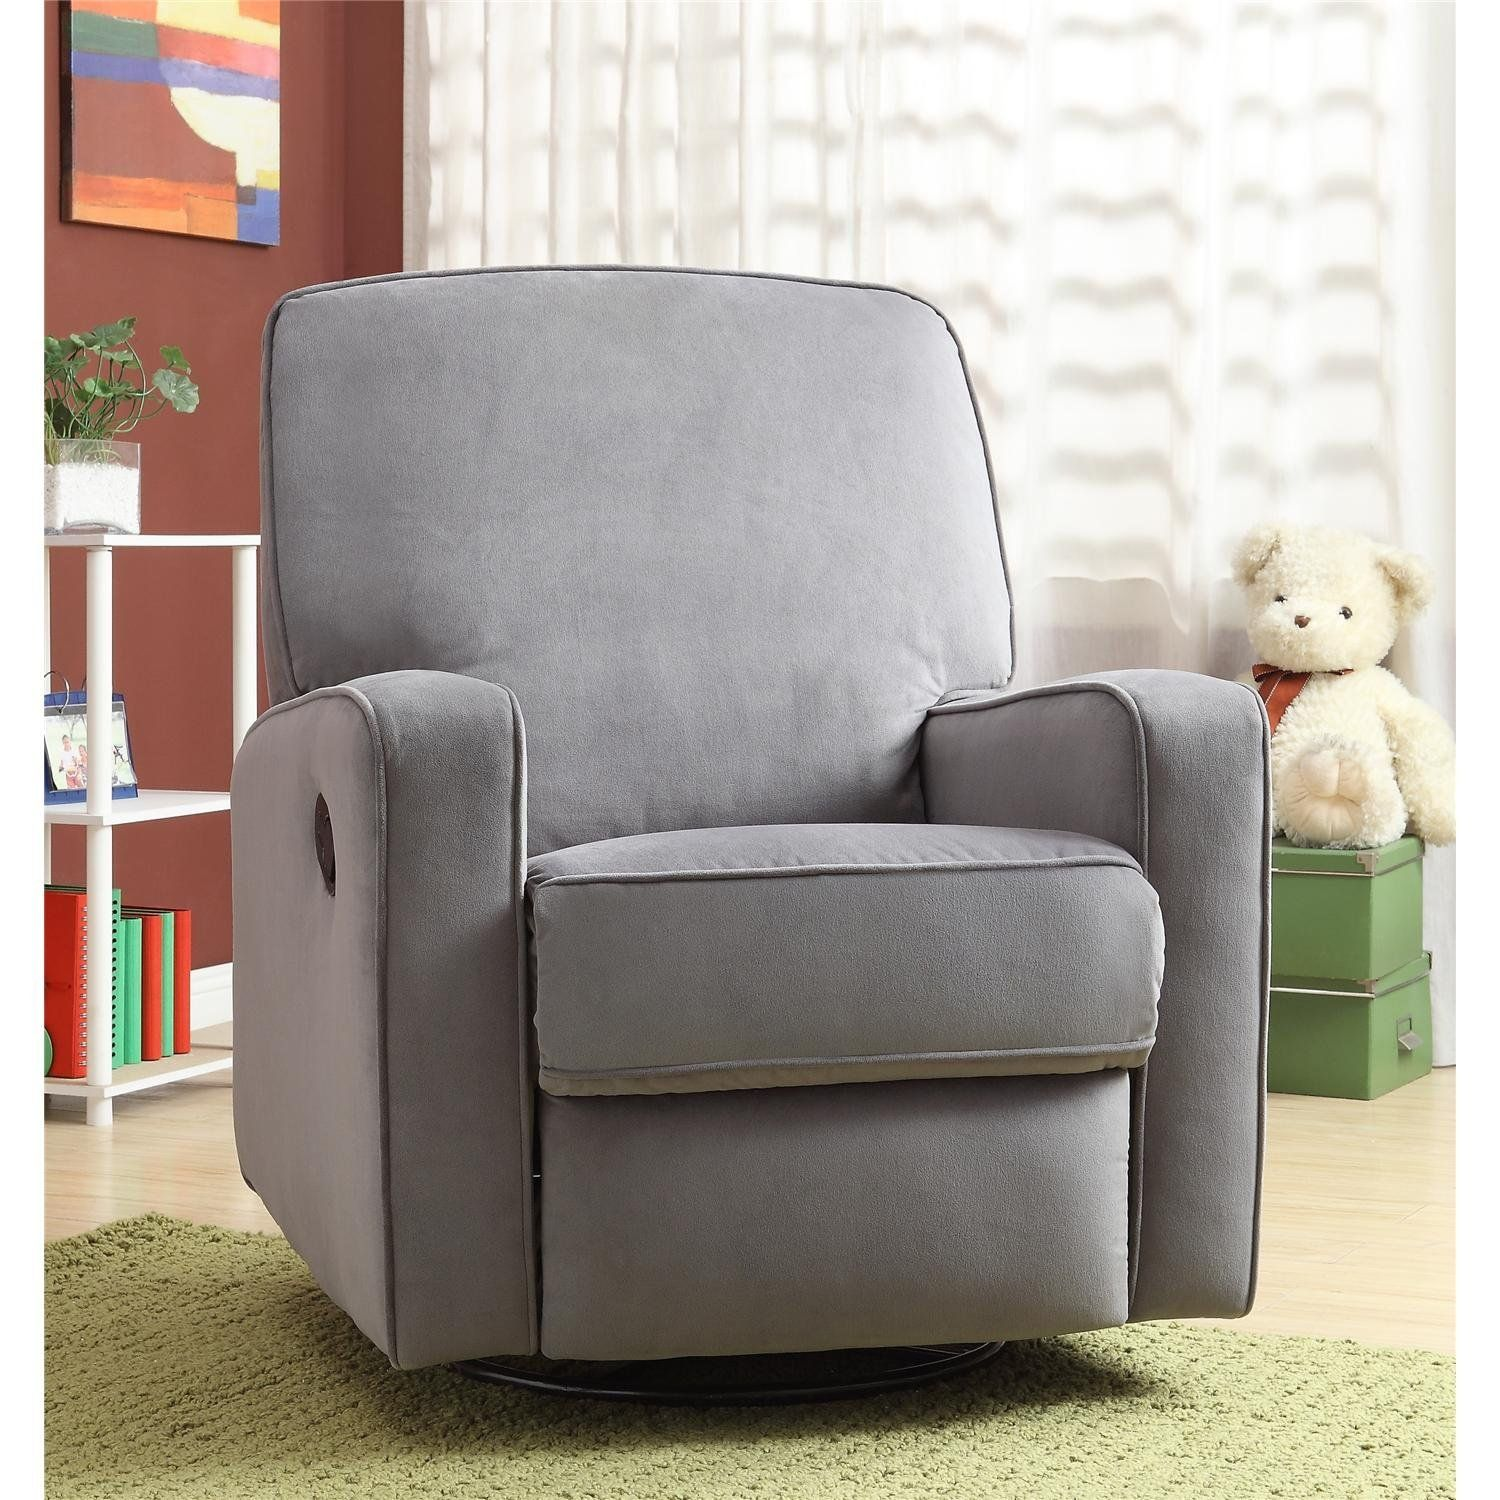 Sutton Swivel Glider Recliner (not expensive) Swivel